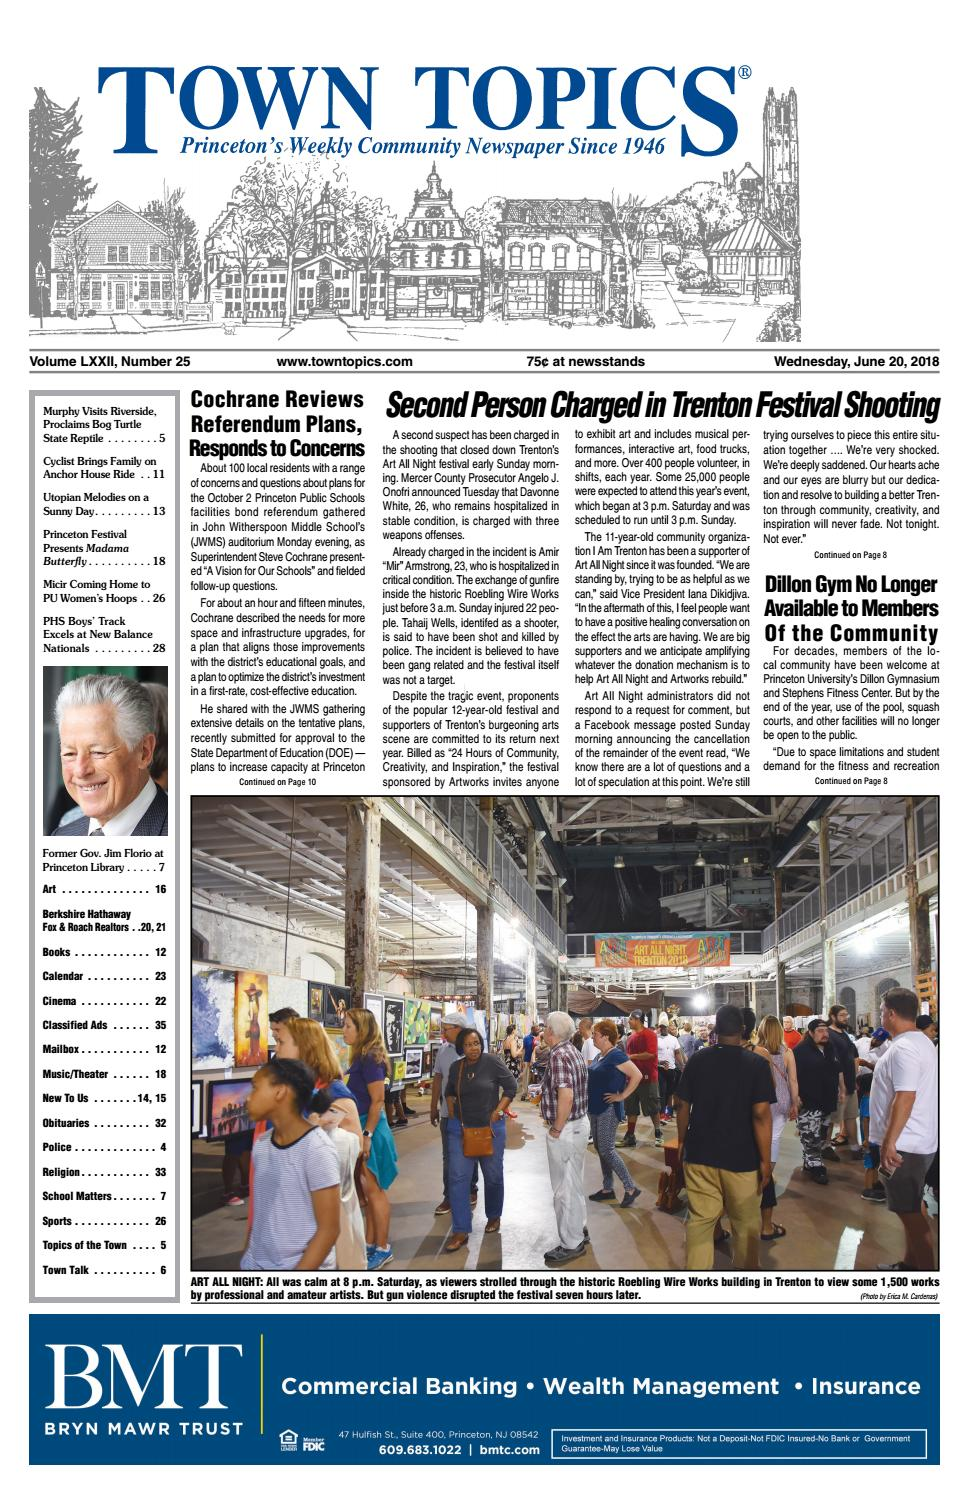 Town Topics Newspaper June 20, 2018 by Witherspoon Media Group - issuu